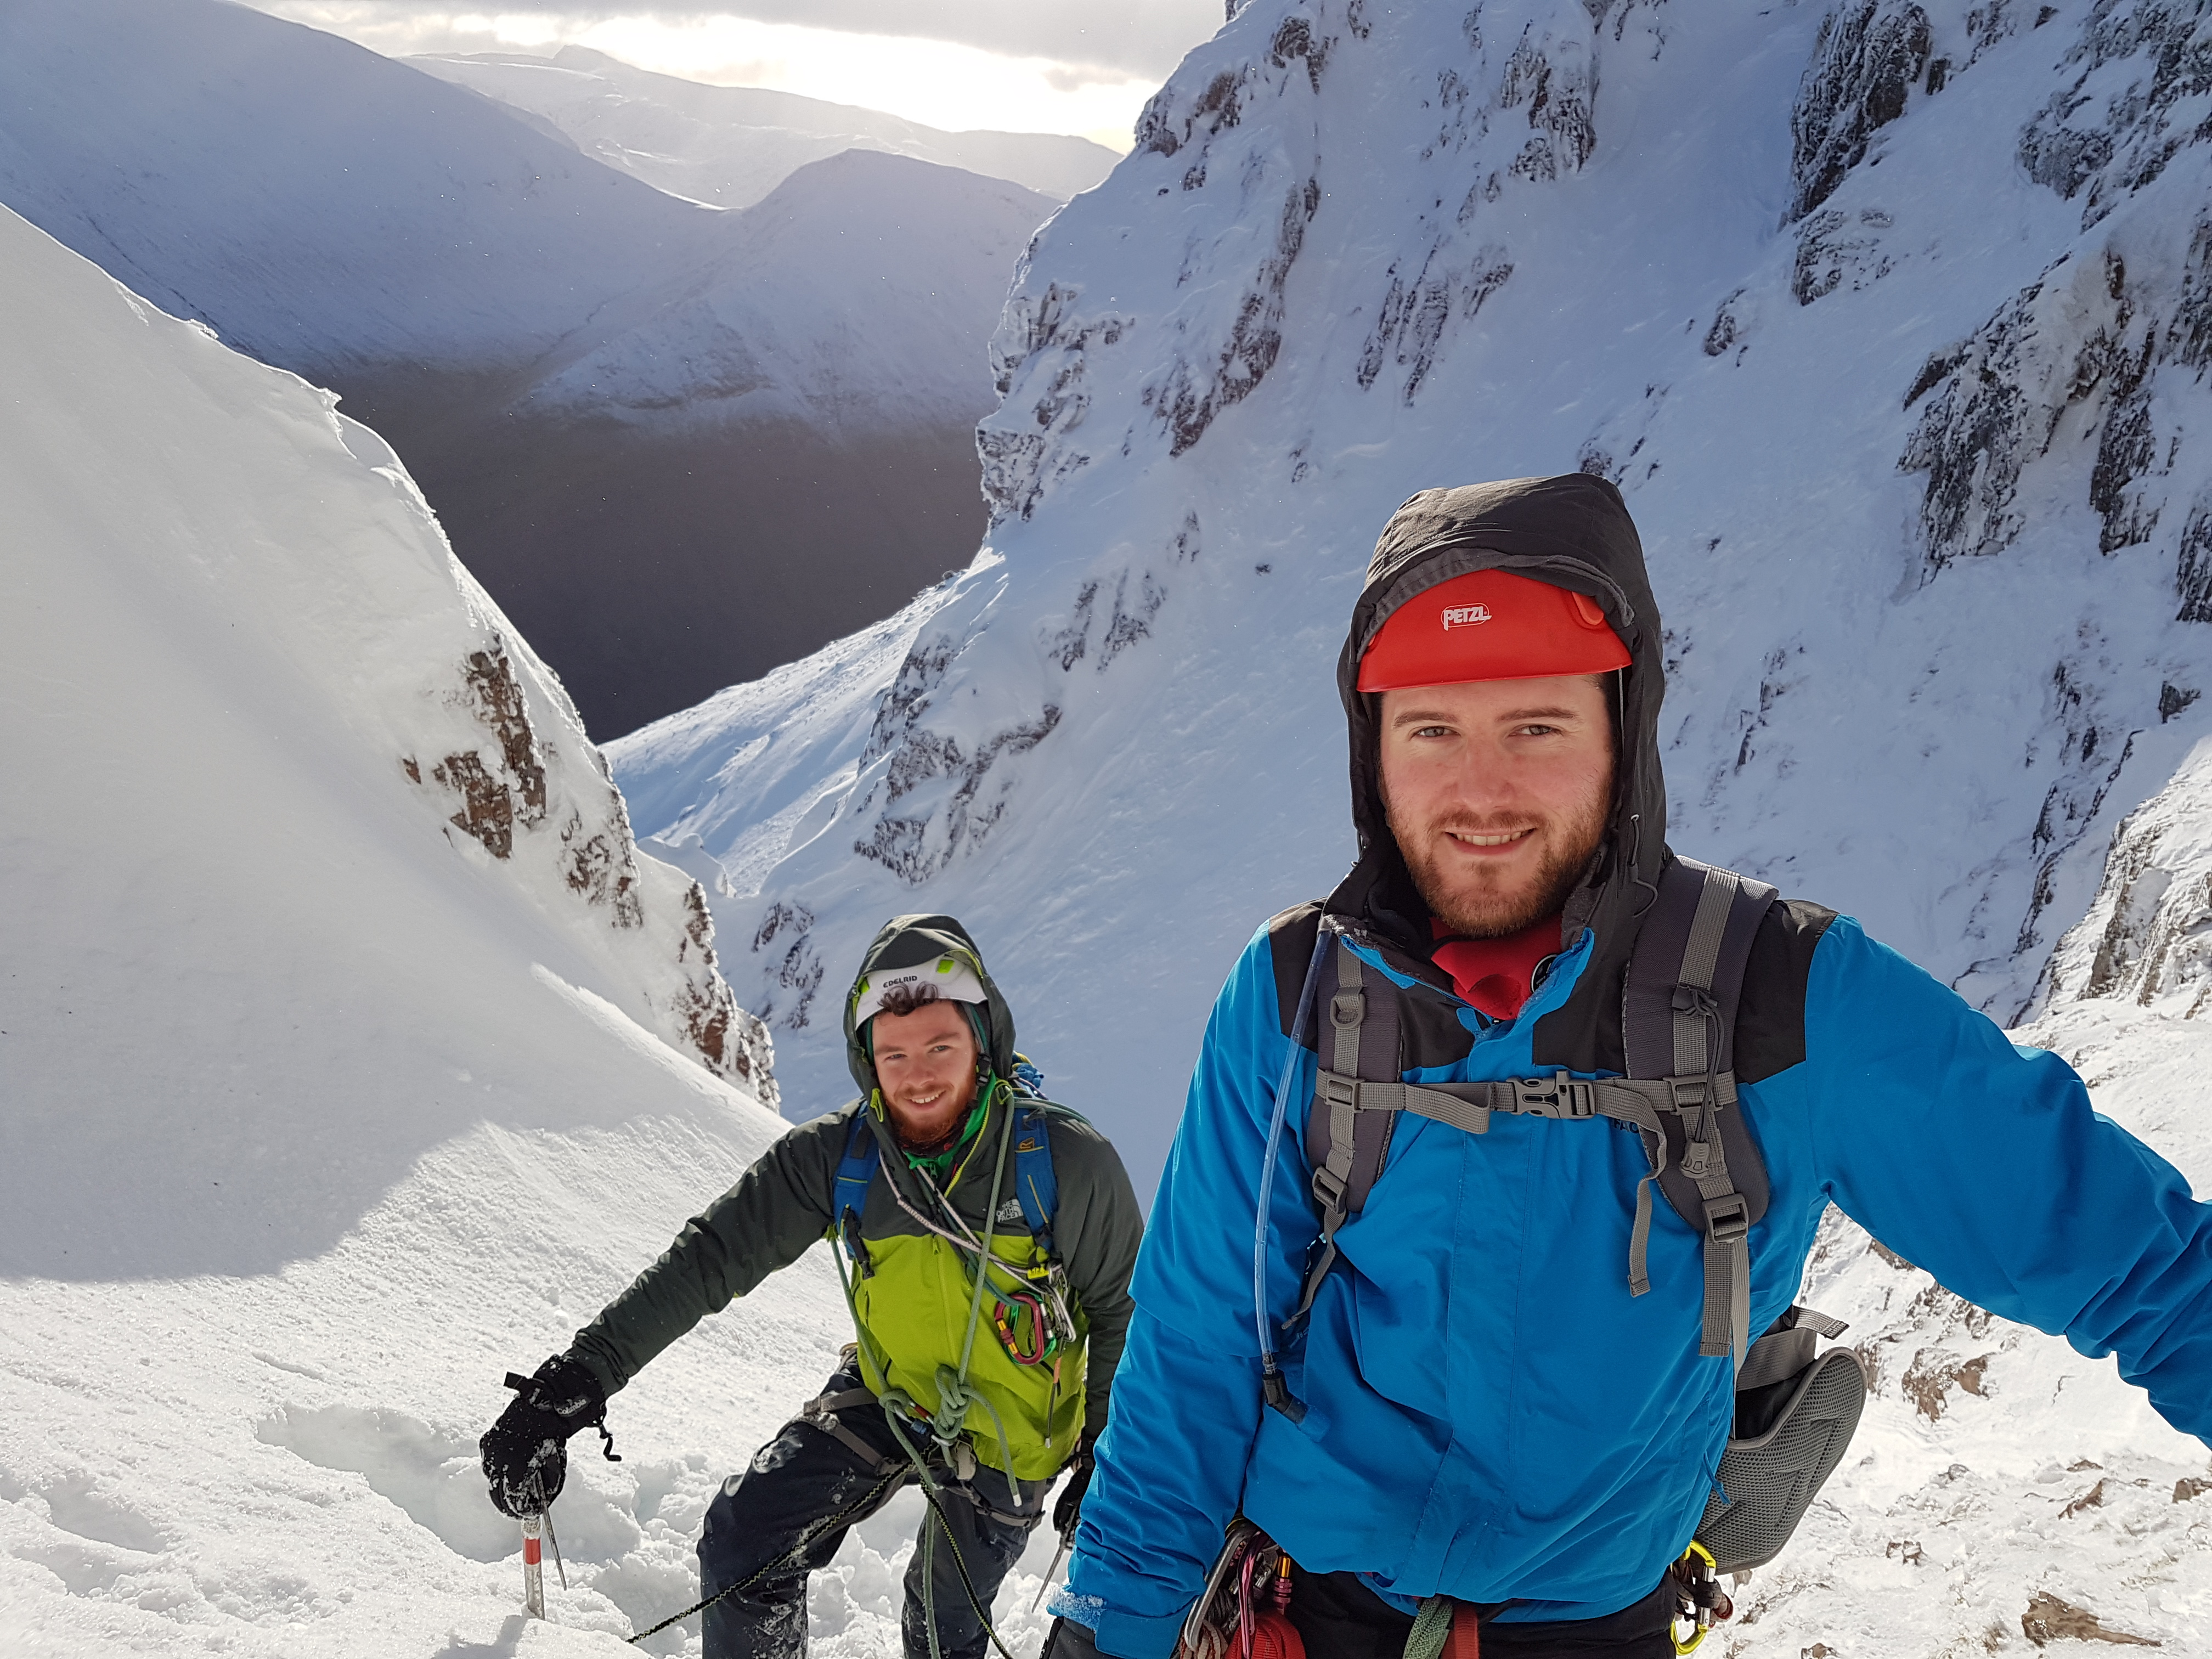 Learn to Winter Climb on Winter Climbing Course in Scotland with Lochaber Guides, Ben Nevis Winter Climbing Guide, Learn Ice Climbing, Scottish Winter Climbing Course